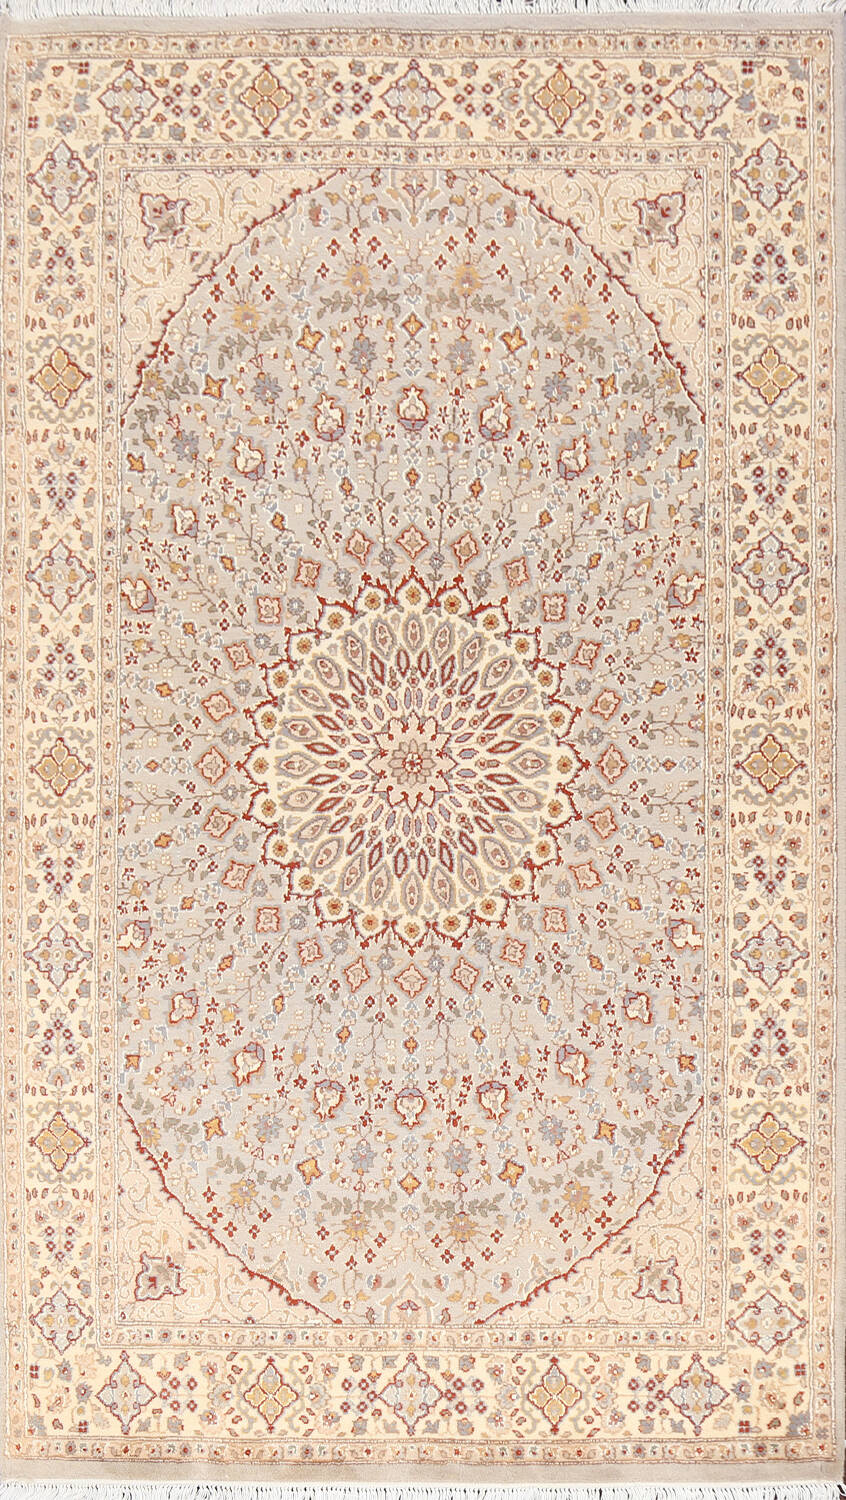 Vegetable Dye Geometric Tabriz Oriental Area Rug 5x7 image 1